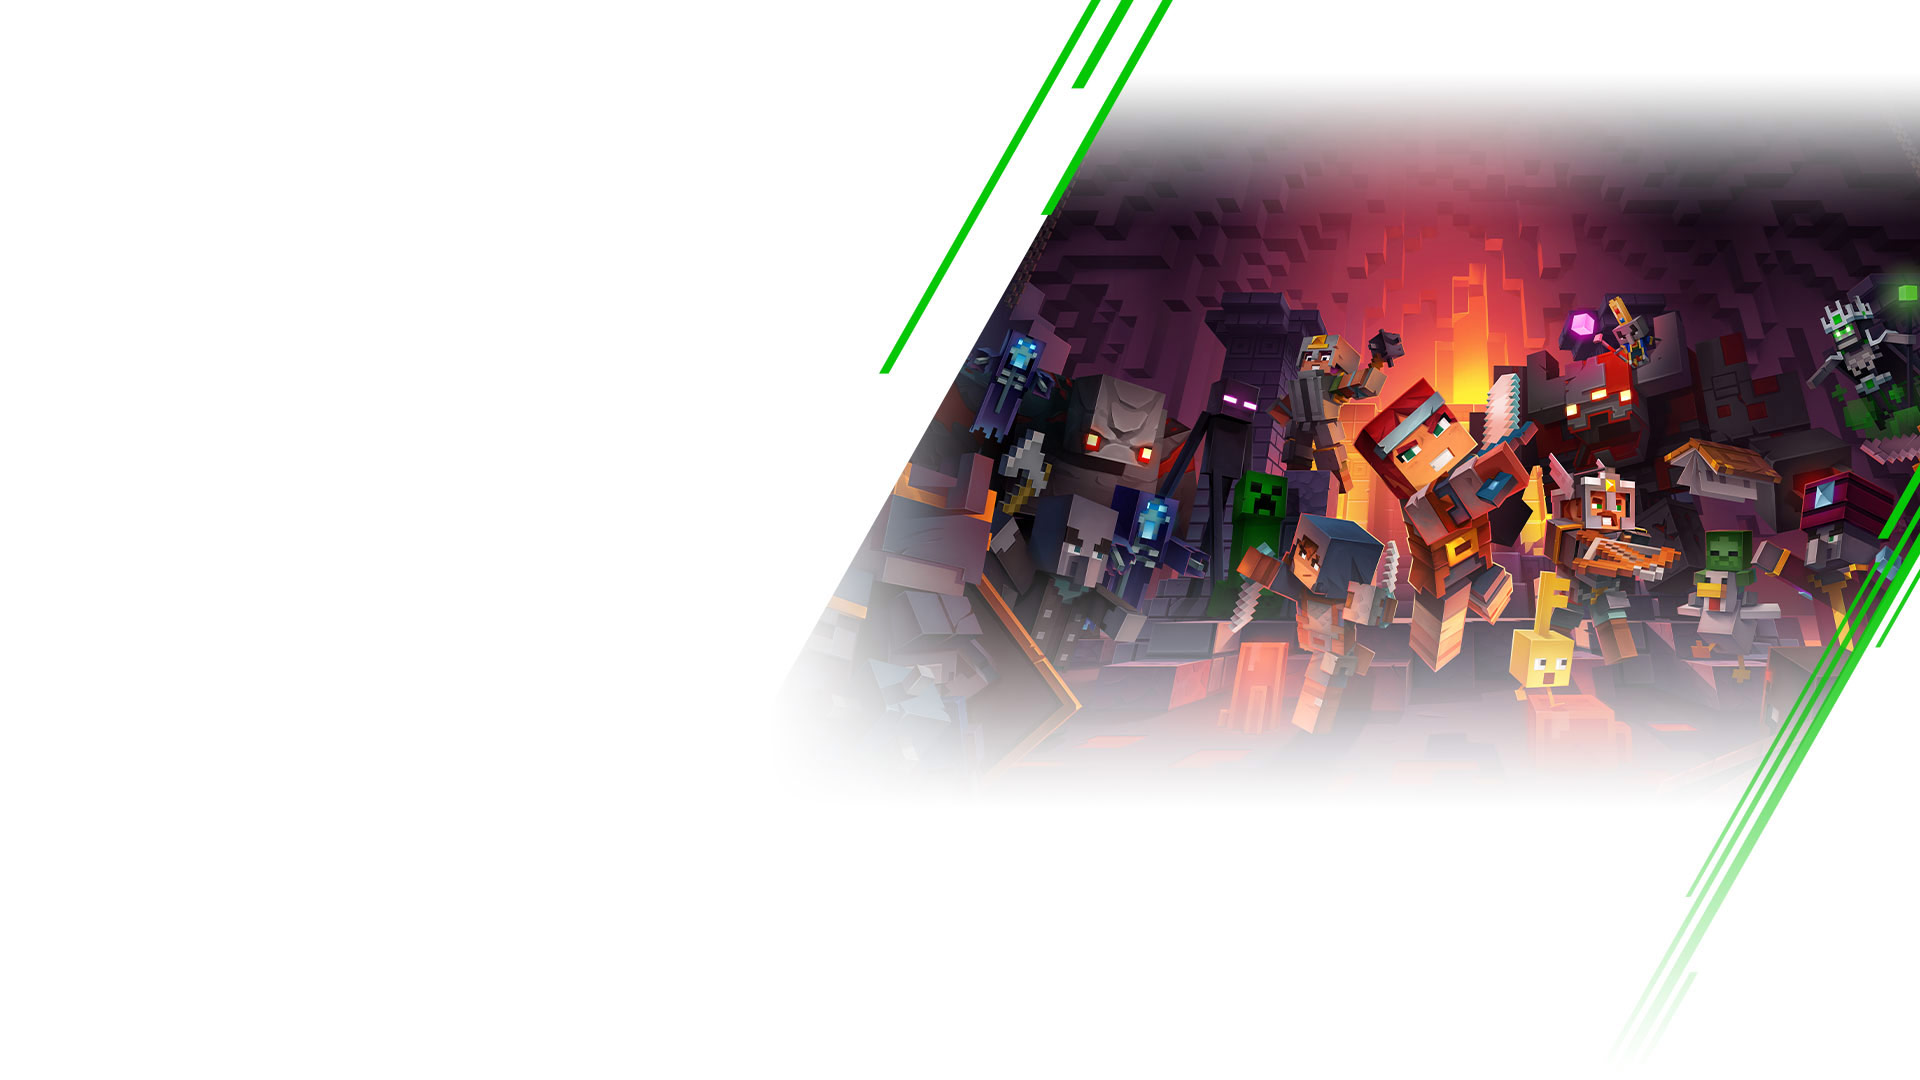 Minecraft Dungeons, Minecraft-personages die vechten in een dungeon.